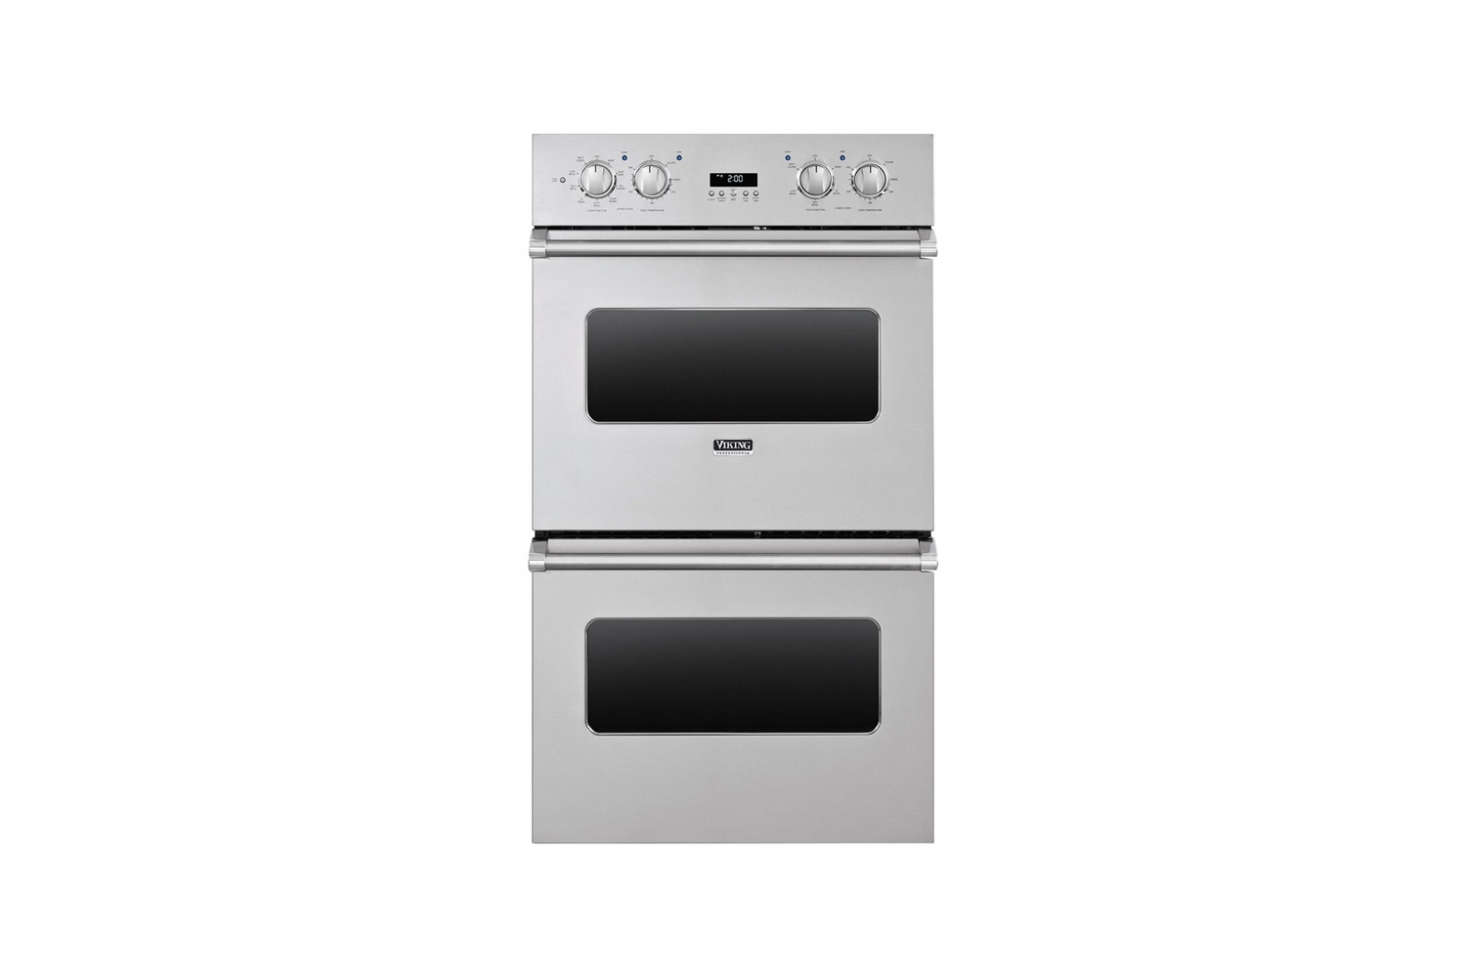 The Viking Professional Built-In Double Electric Convection Wall Oven is $6,399 at Pacific Sales.